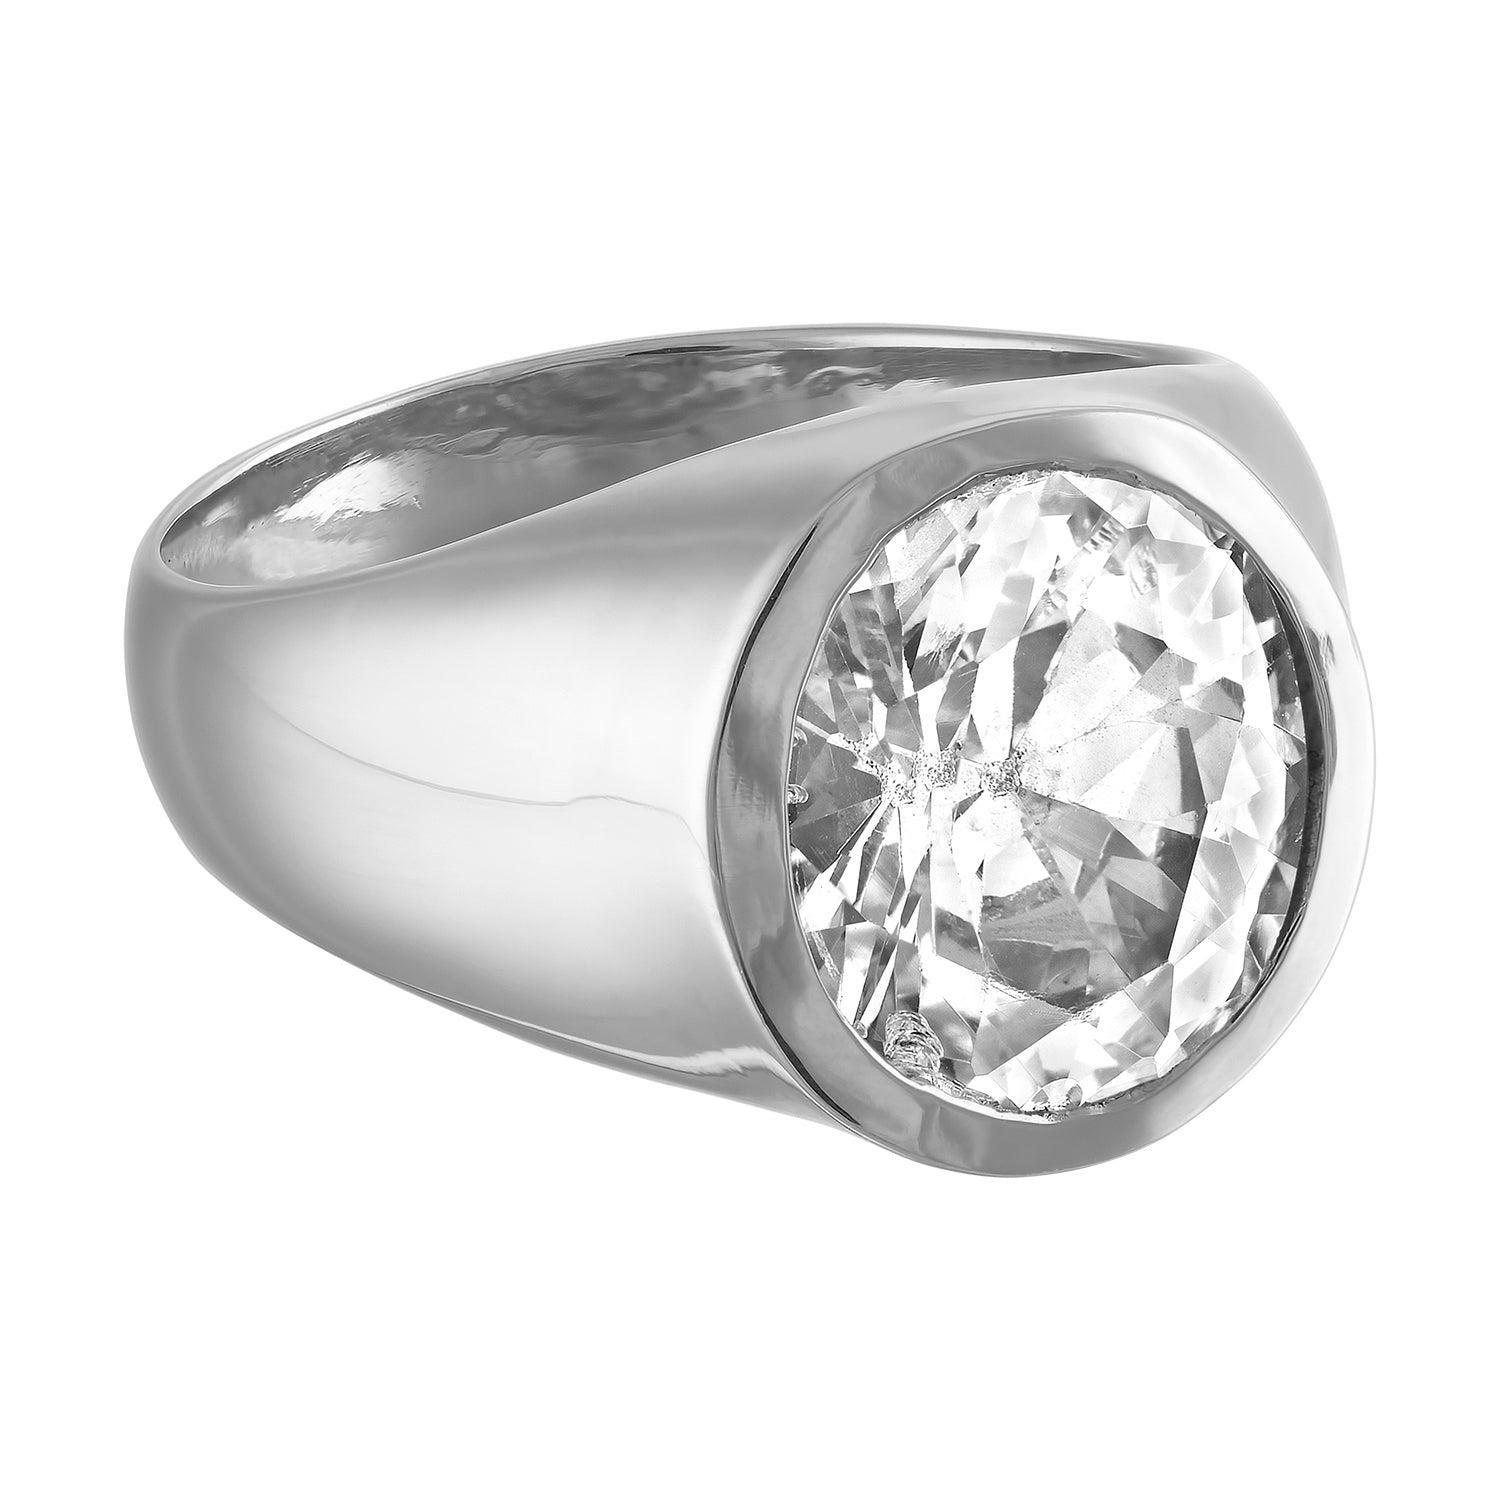 Multi-faceted Signet Ring w/ White Sapphire